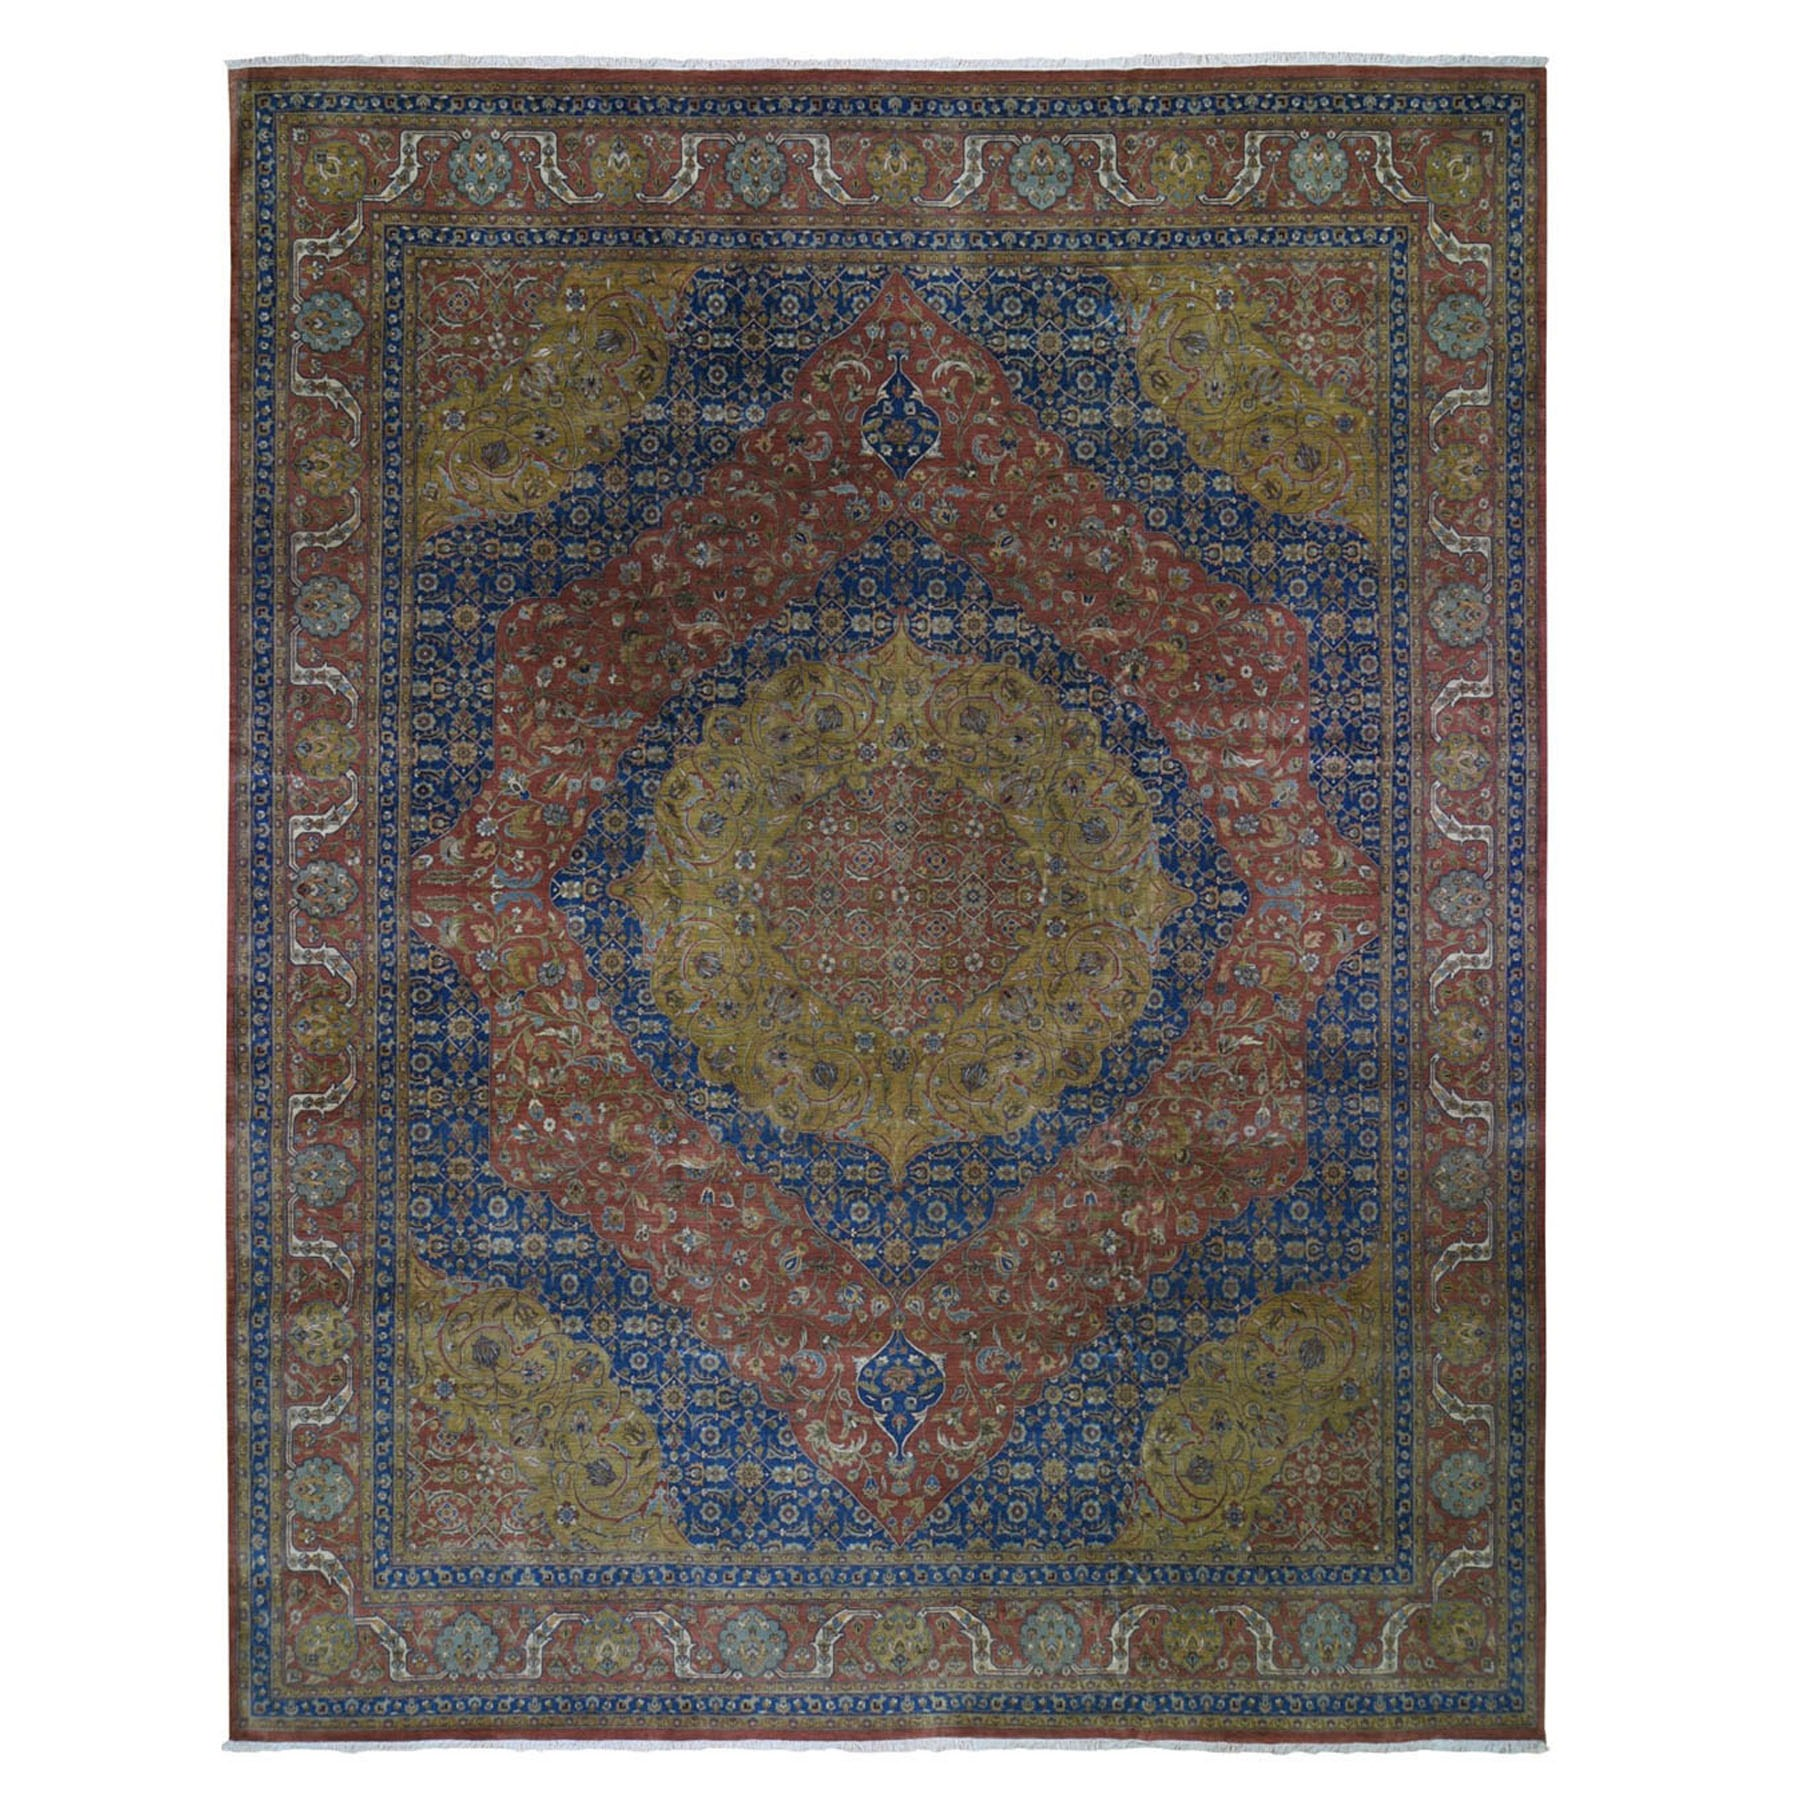 Pirniakan Collection Hand Knotted Red Rug No: 199534